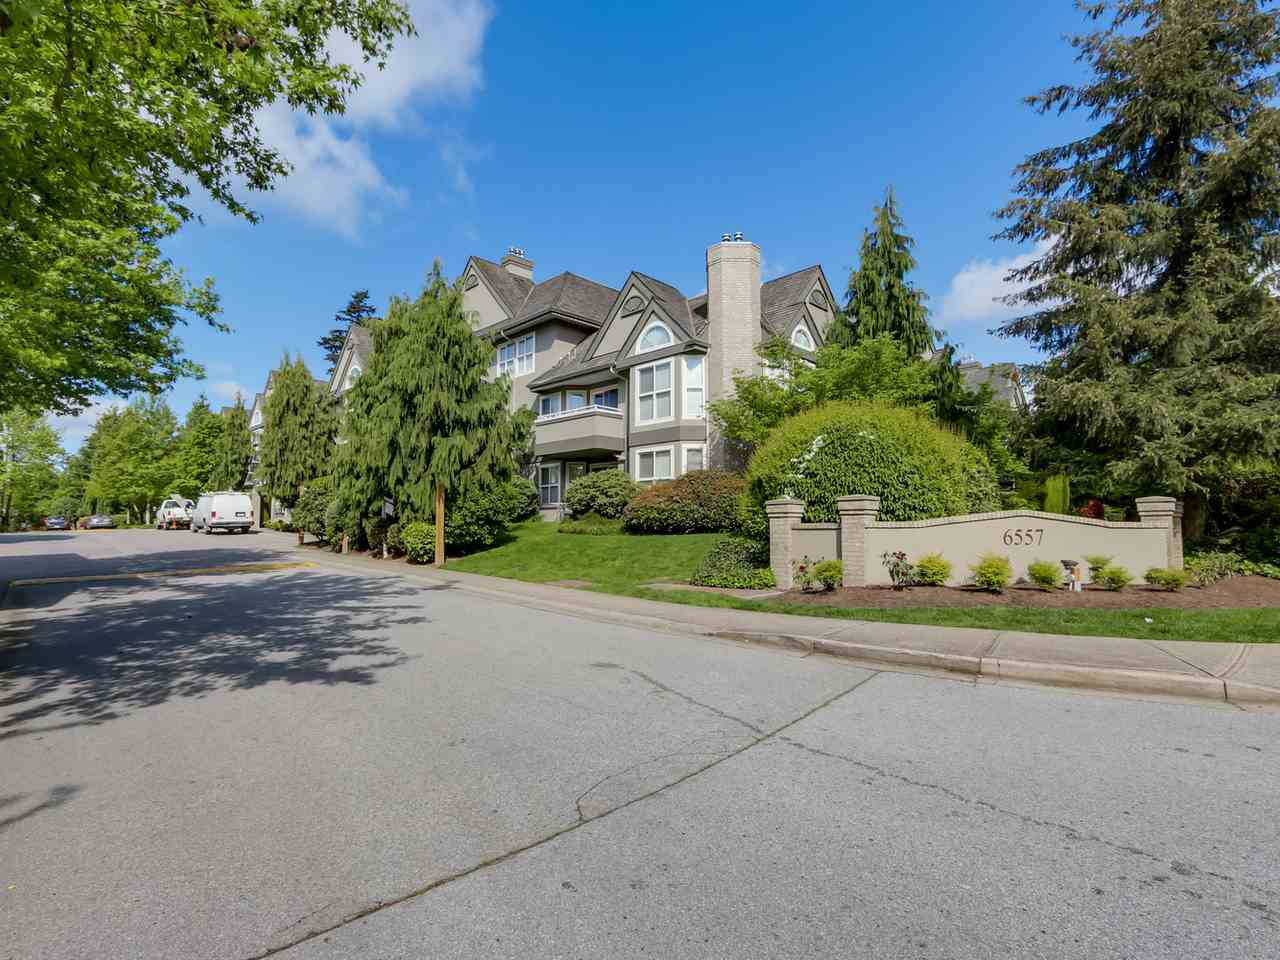 Main Photo: 218 6557 121 STREET in Surrey: West Newton Condo for sale : MLS®# R2061214